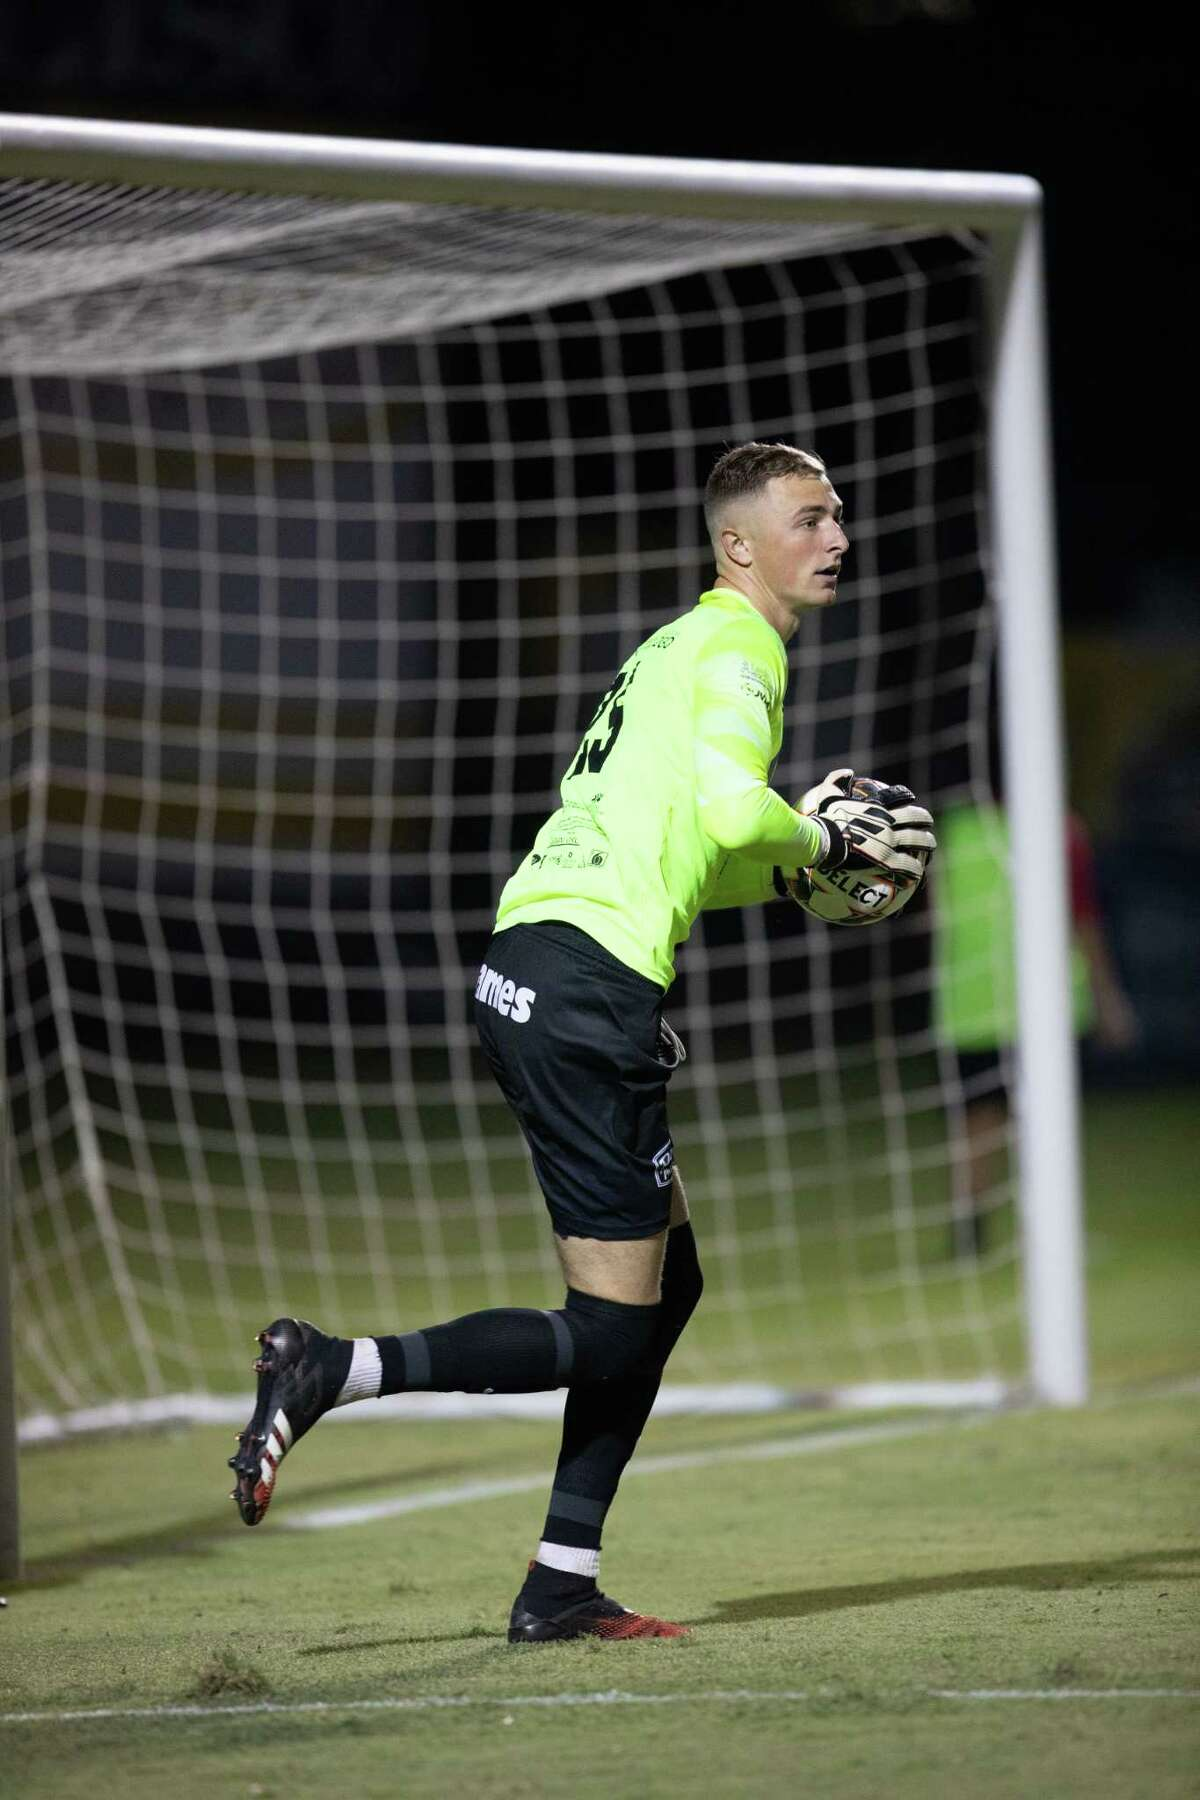 Gage Rogers helped the Heat record their first shutout of the season in a 4-0 win over FC Brownsville on Wednesday at the TAMIU Soccer Complex.